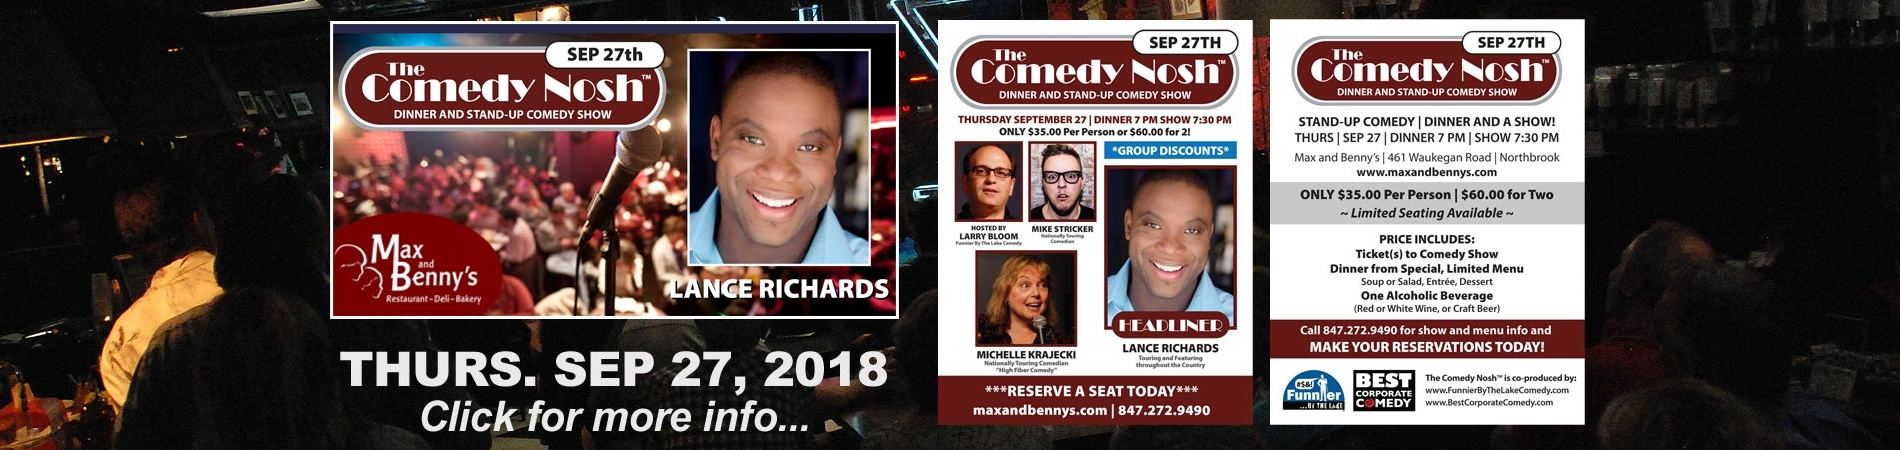 The Comedy Nosh with Headliner Lance Richards